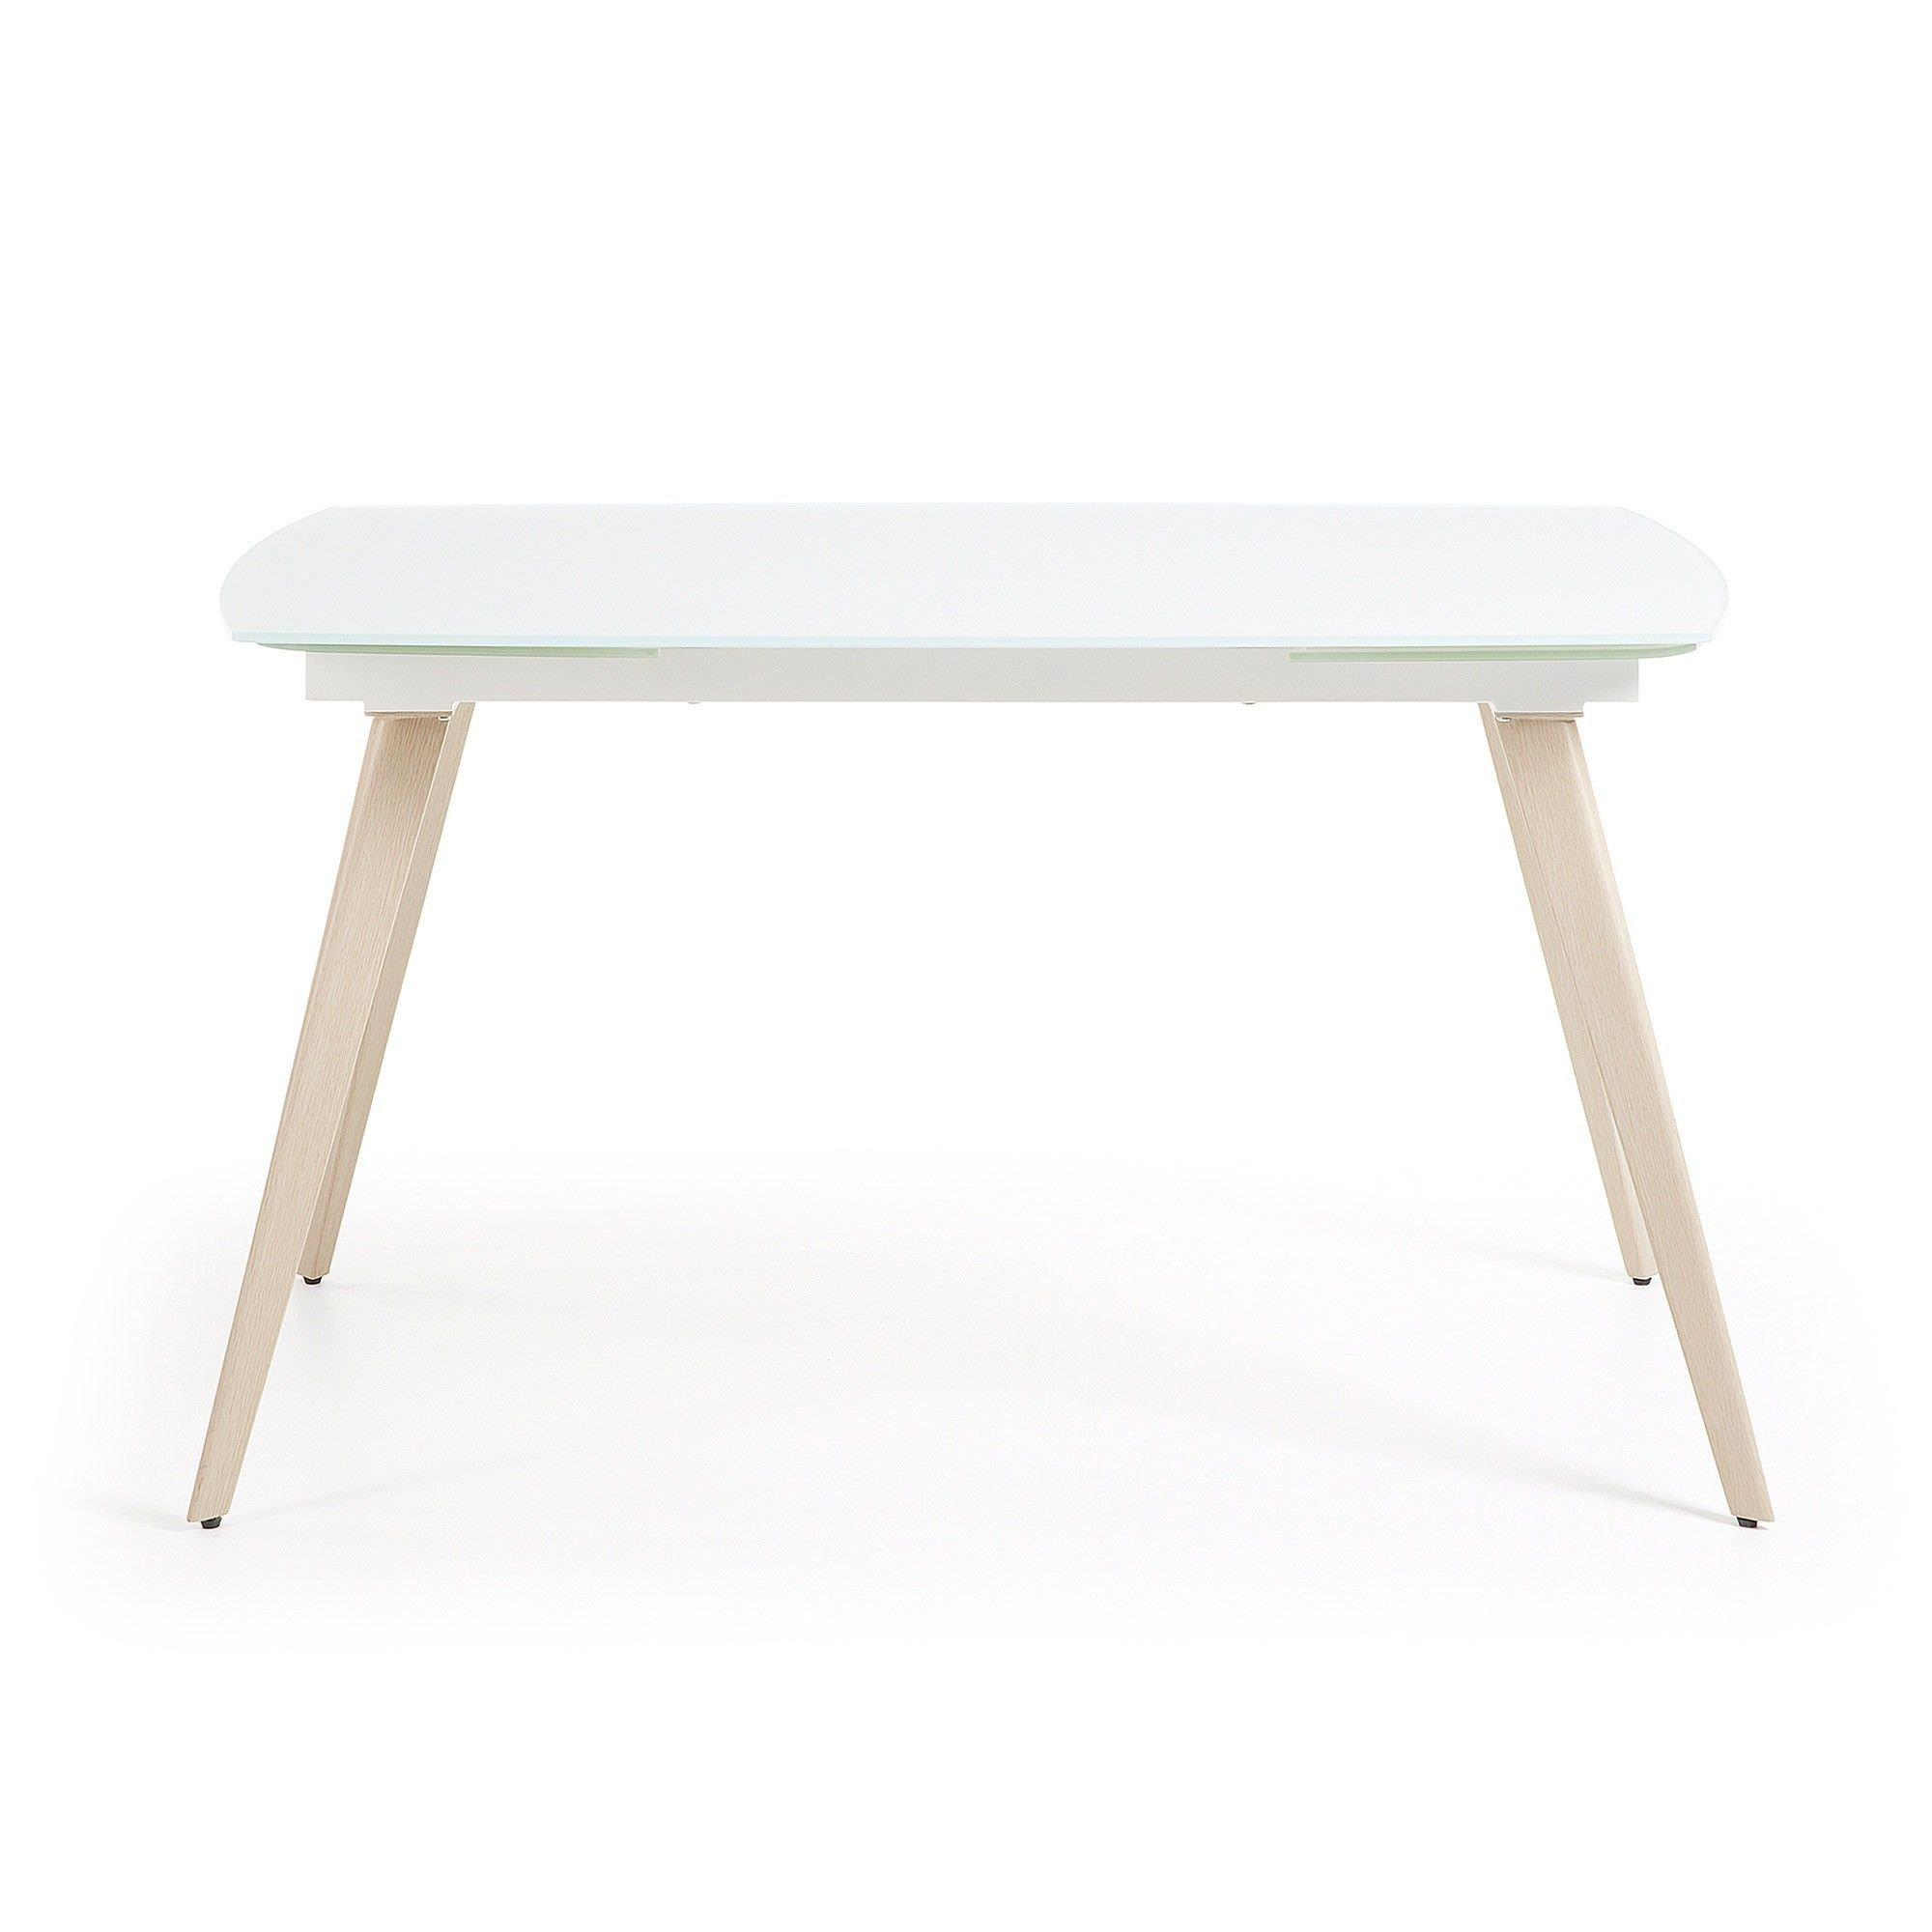 Terra Tempered Glass & Steel Extendable Dining Table, 140-210cm, White / Natural